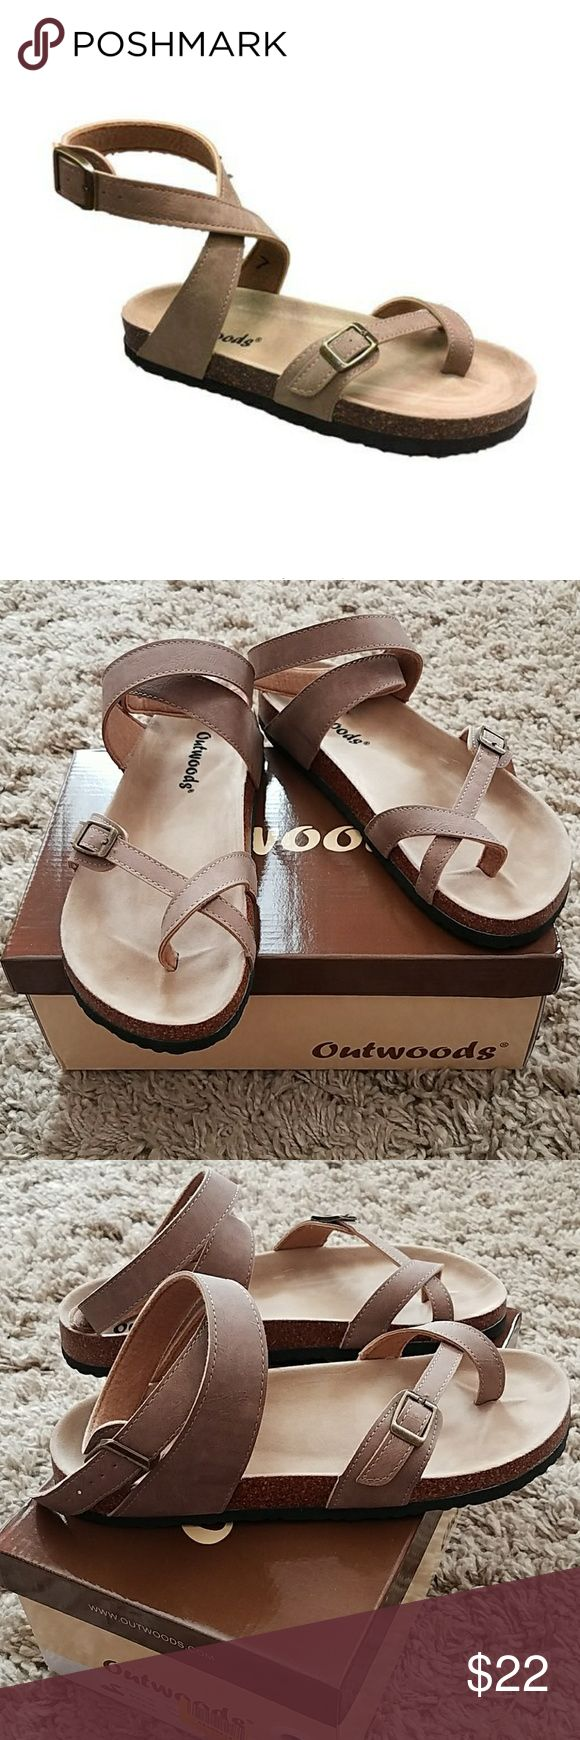 *NWT* Taup Sandal Vegan Leather Outwoods Bork 39 Taup Vegan Leather. Nubuck look on straps. Suede fabric foot bed. Cork look mid sole. New, never worn. Outwoods Shoes Sandals